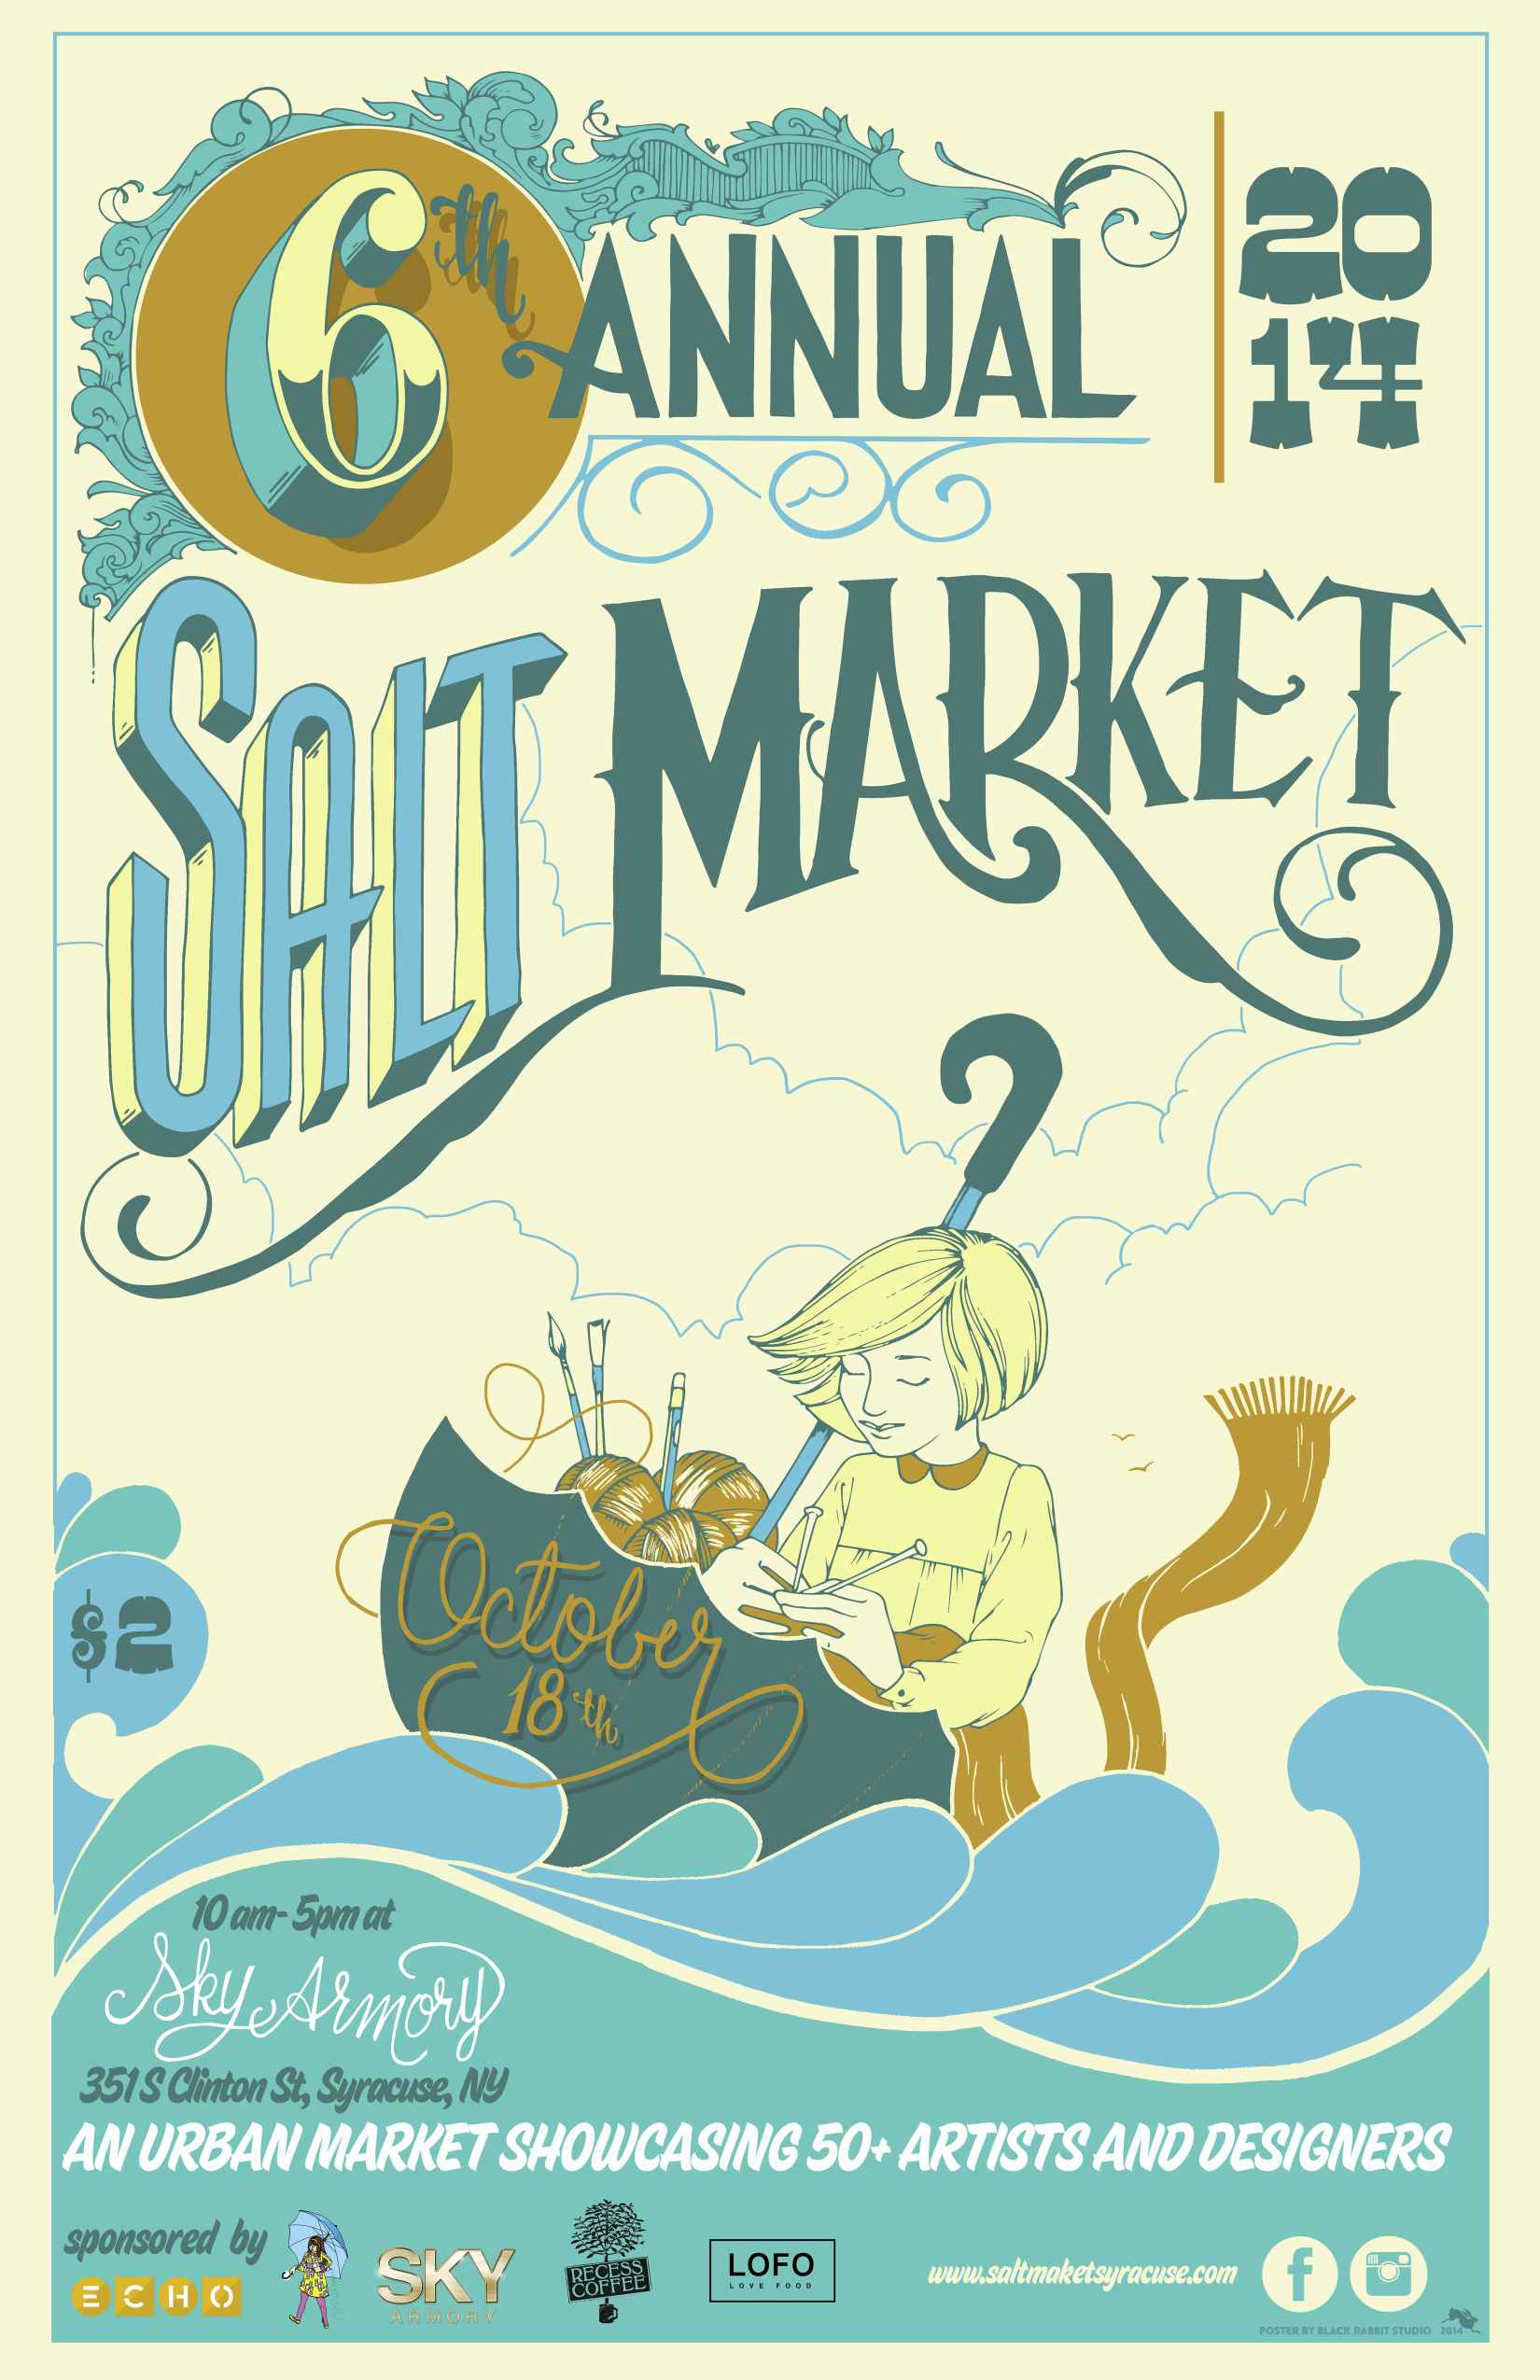 Visit Smock at the 2014 Syracuse Salt Market!